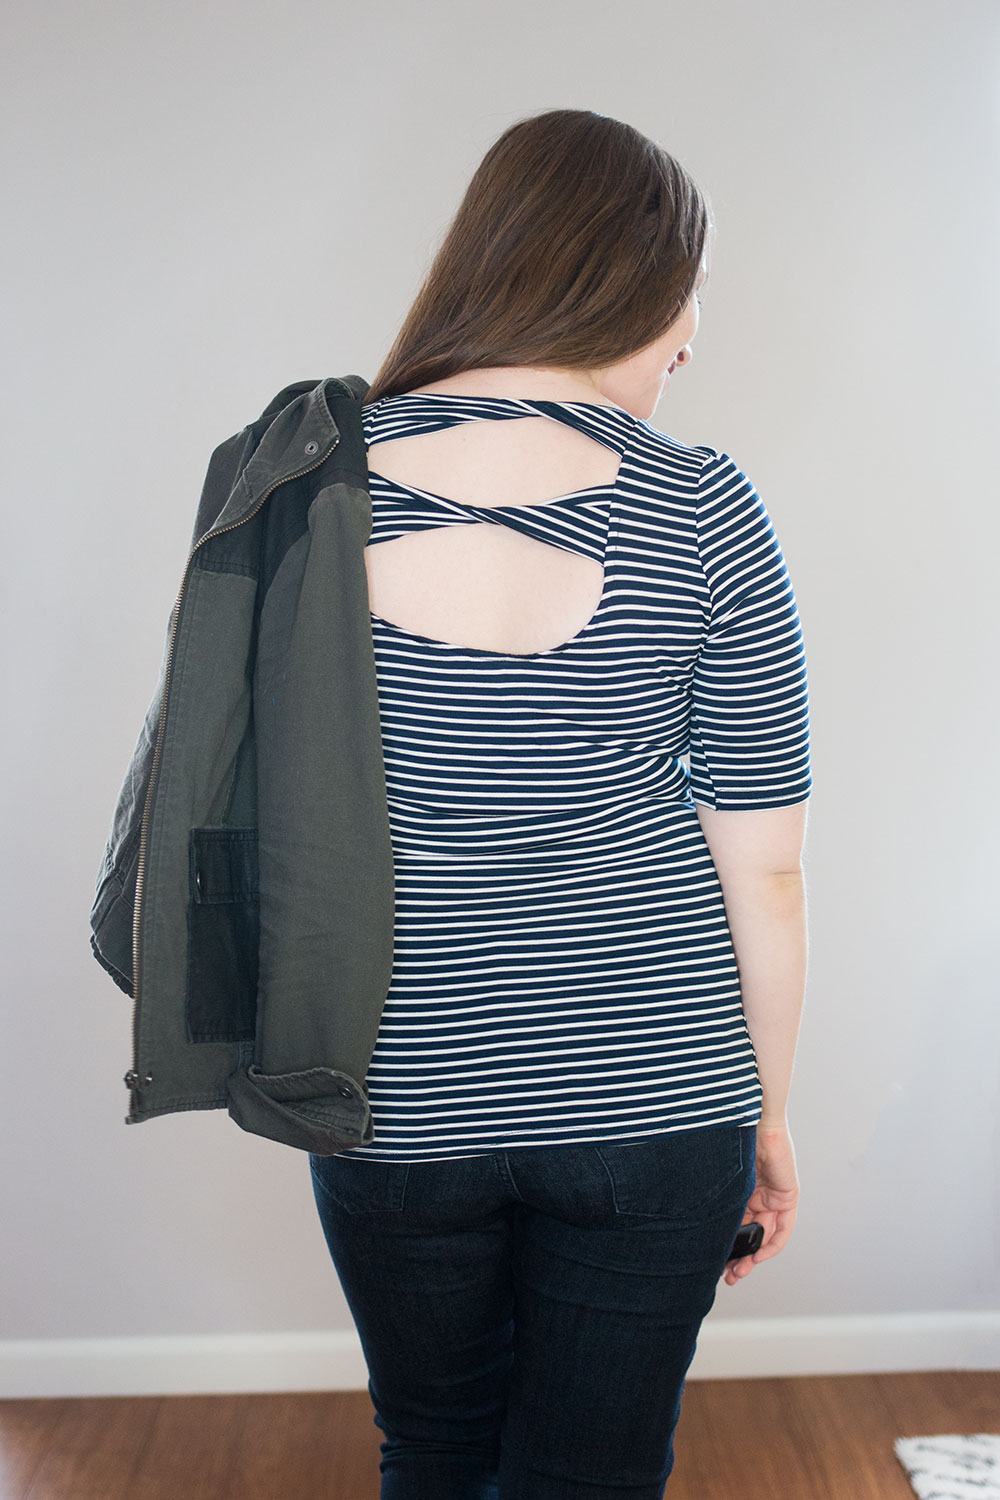 Stitch Fix March 2016 Review // Market & Spruce Abberley Cut Out Detail Knit Top {Back View} // Hello Rigby Seattle Fashion & Style Blog